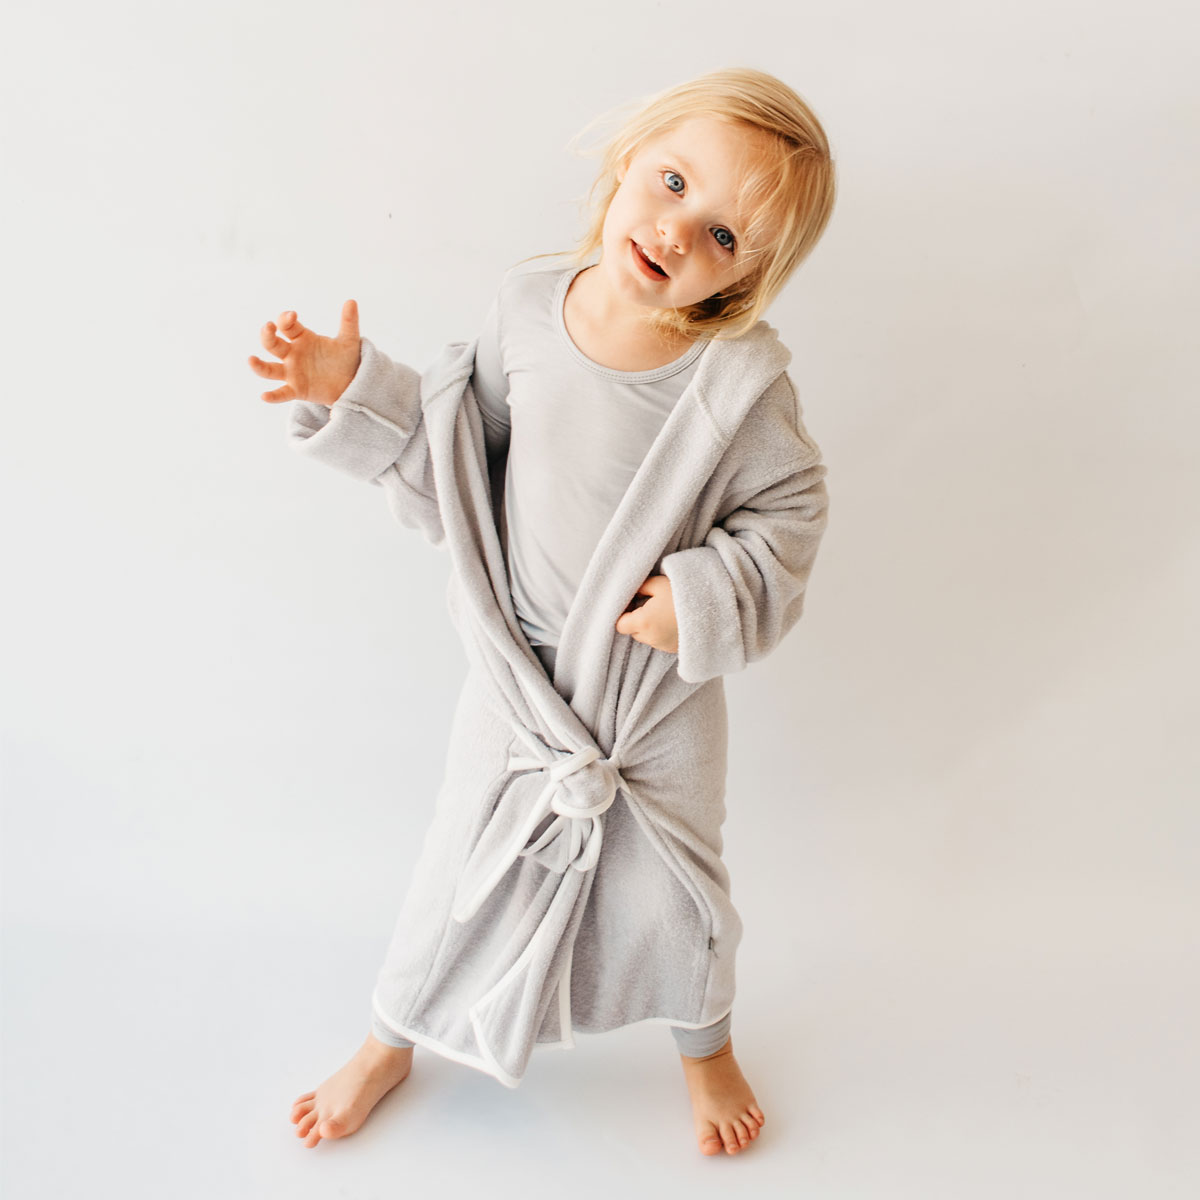 Kyte Baby Hooded Bamboo Terry Bath Robe in Storm Grey with Cloud White on girl